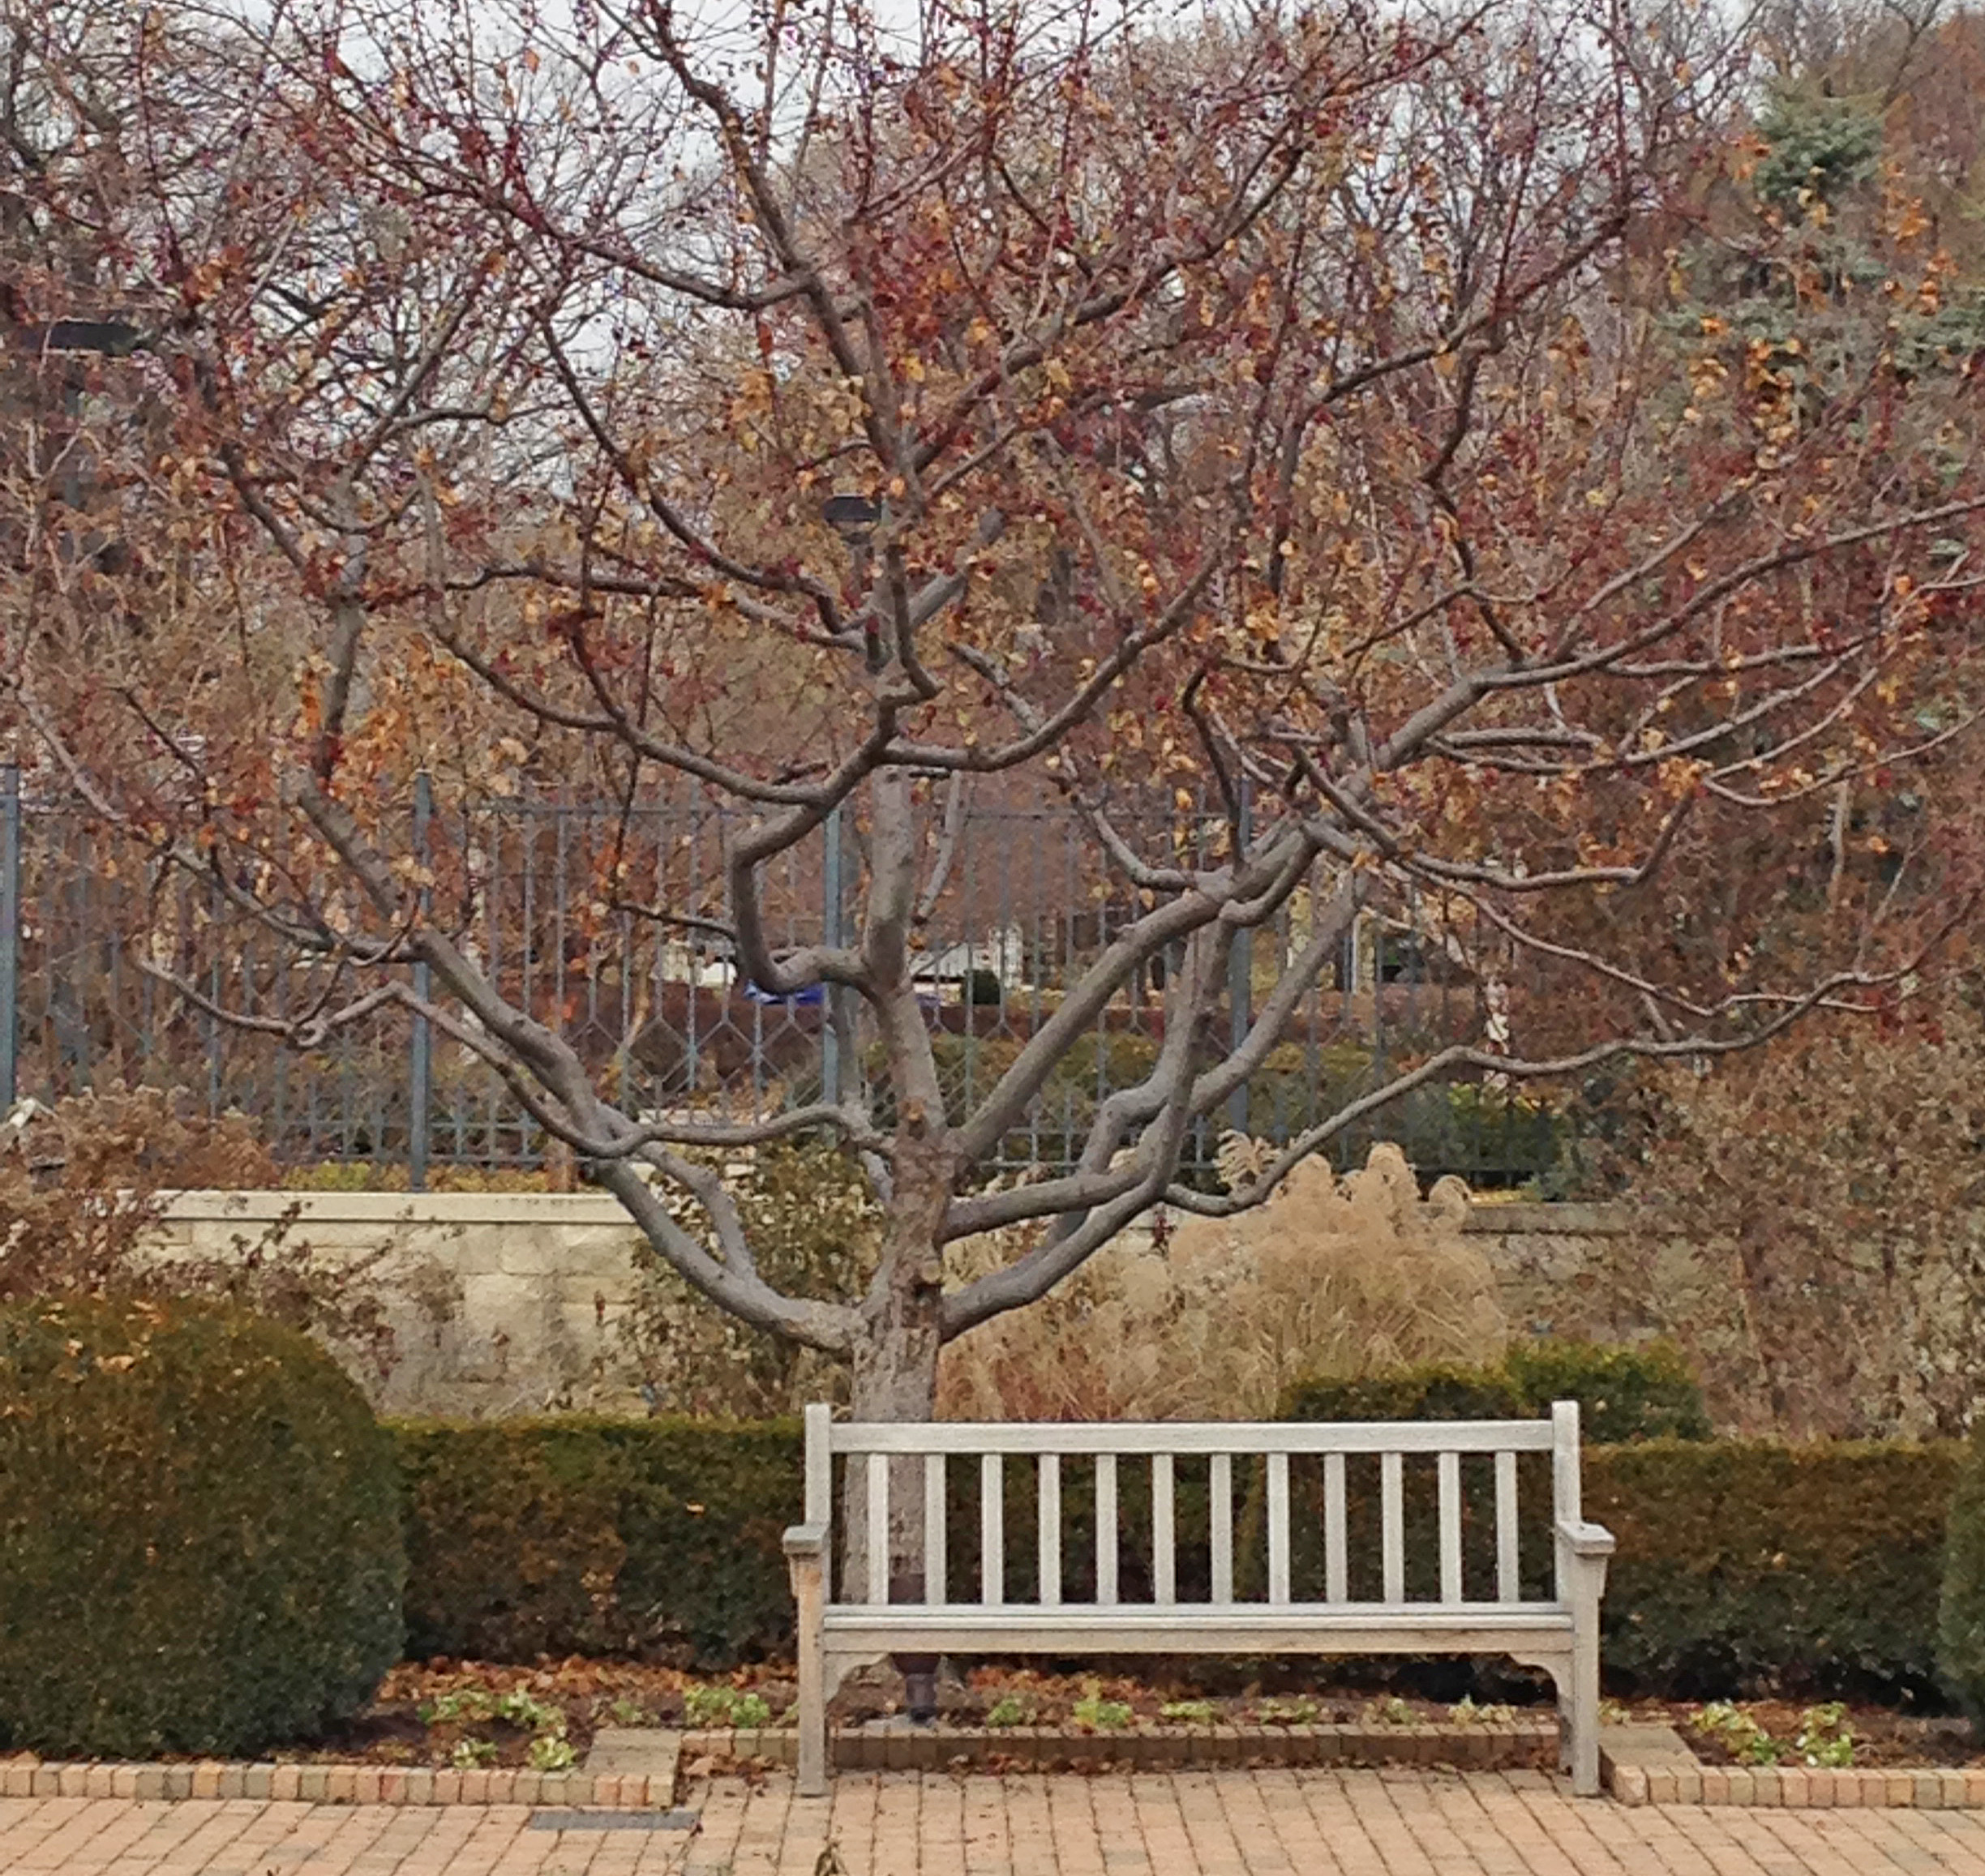 A few preventative steps will help keep trees and shrubs strong and healthy through the winter.